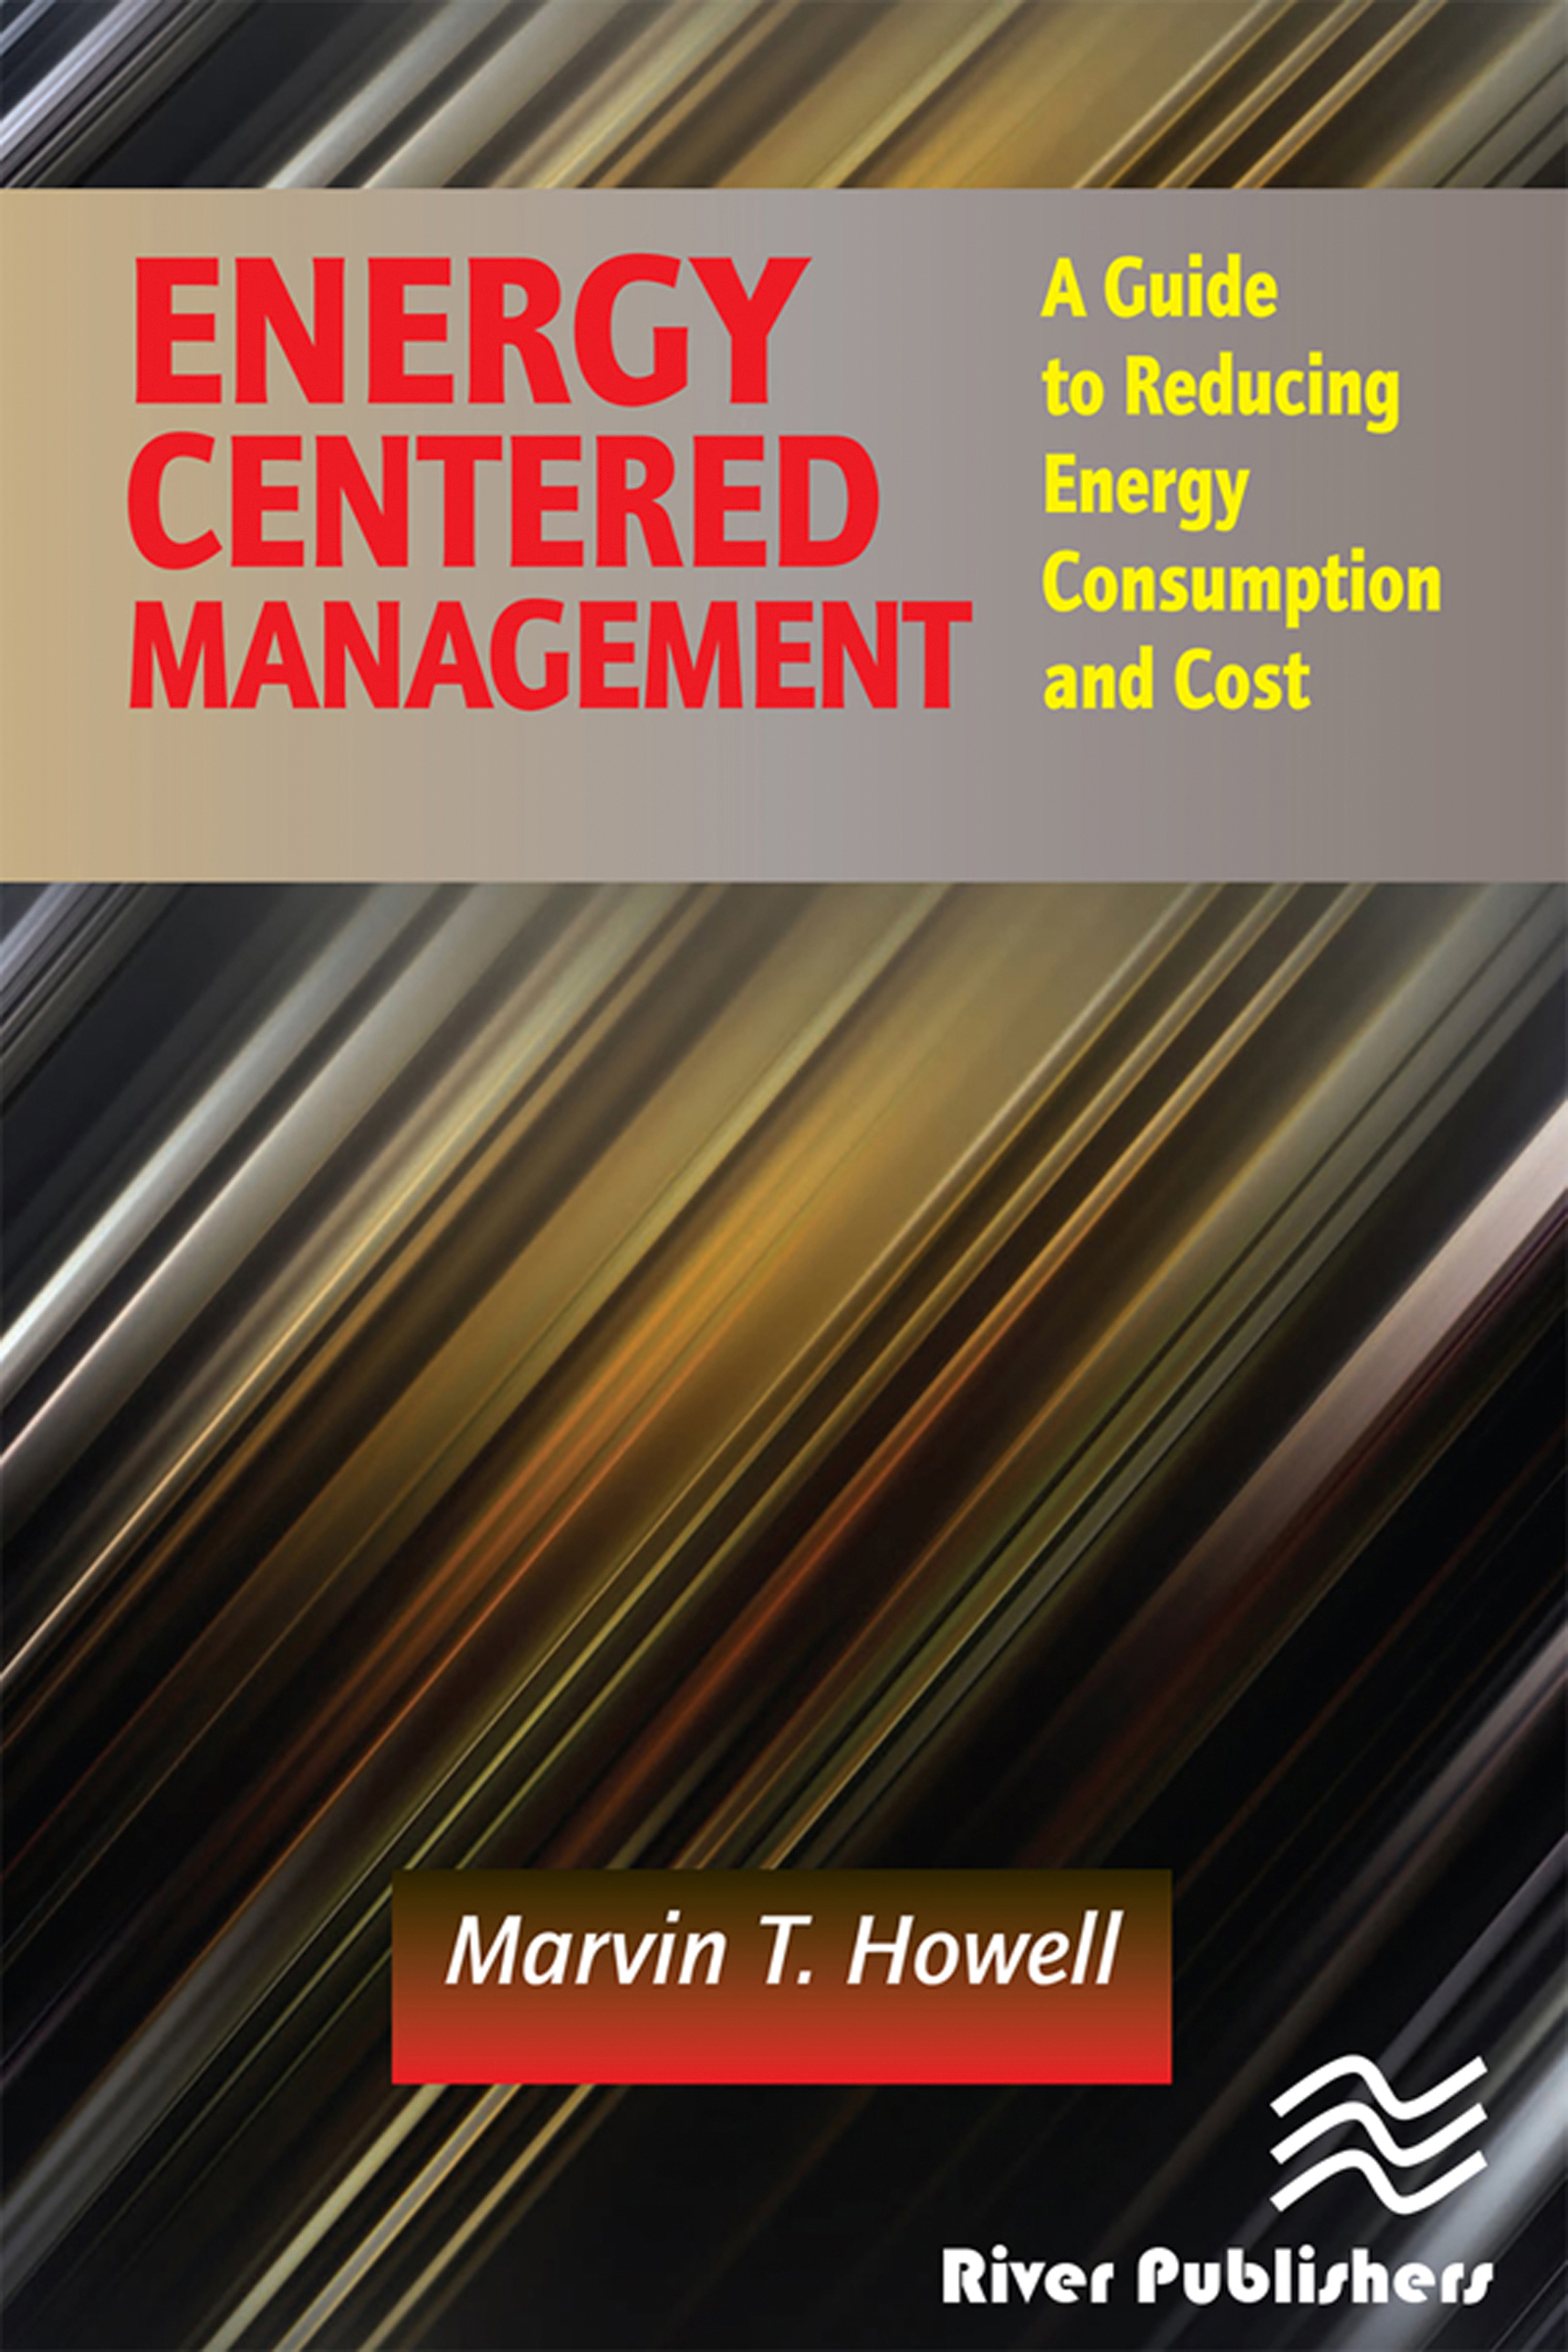 Energy Centered Projects (ECP)